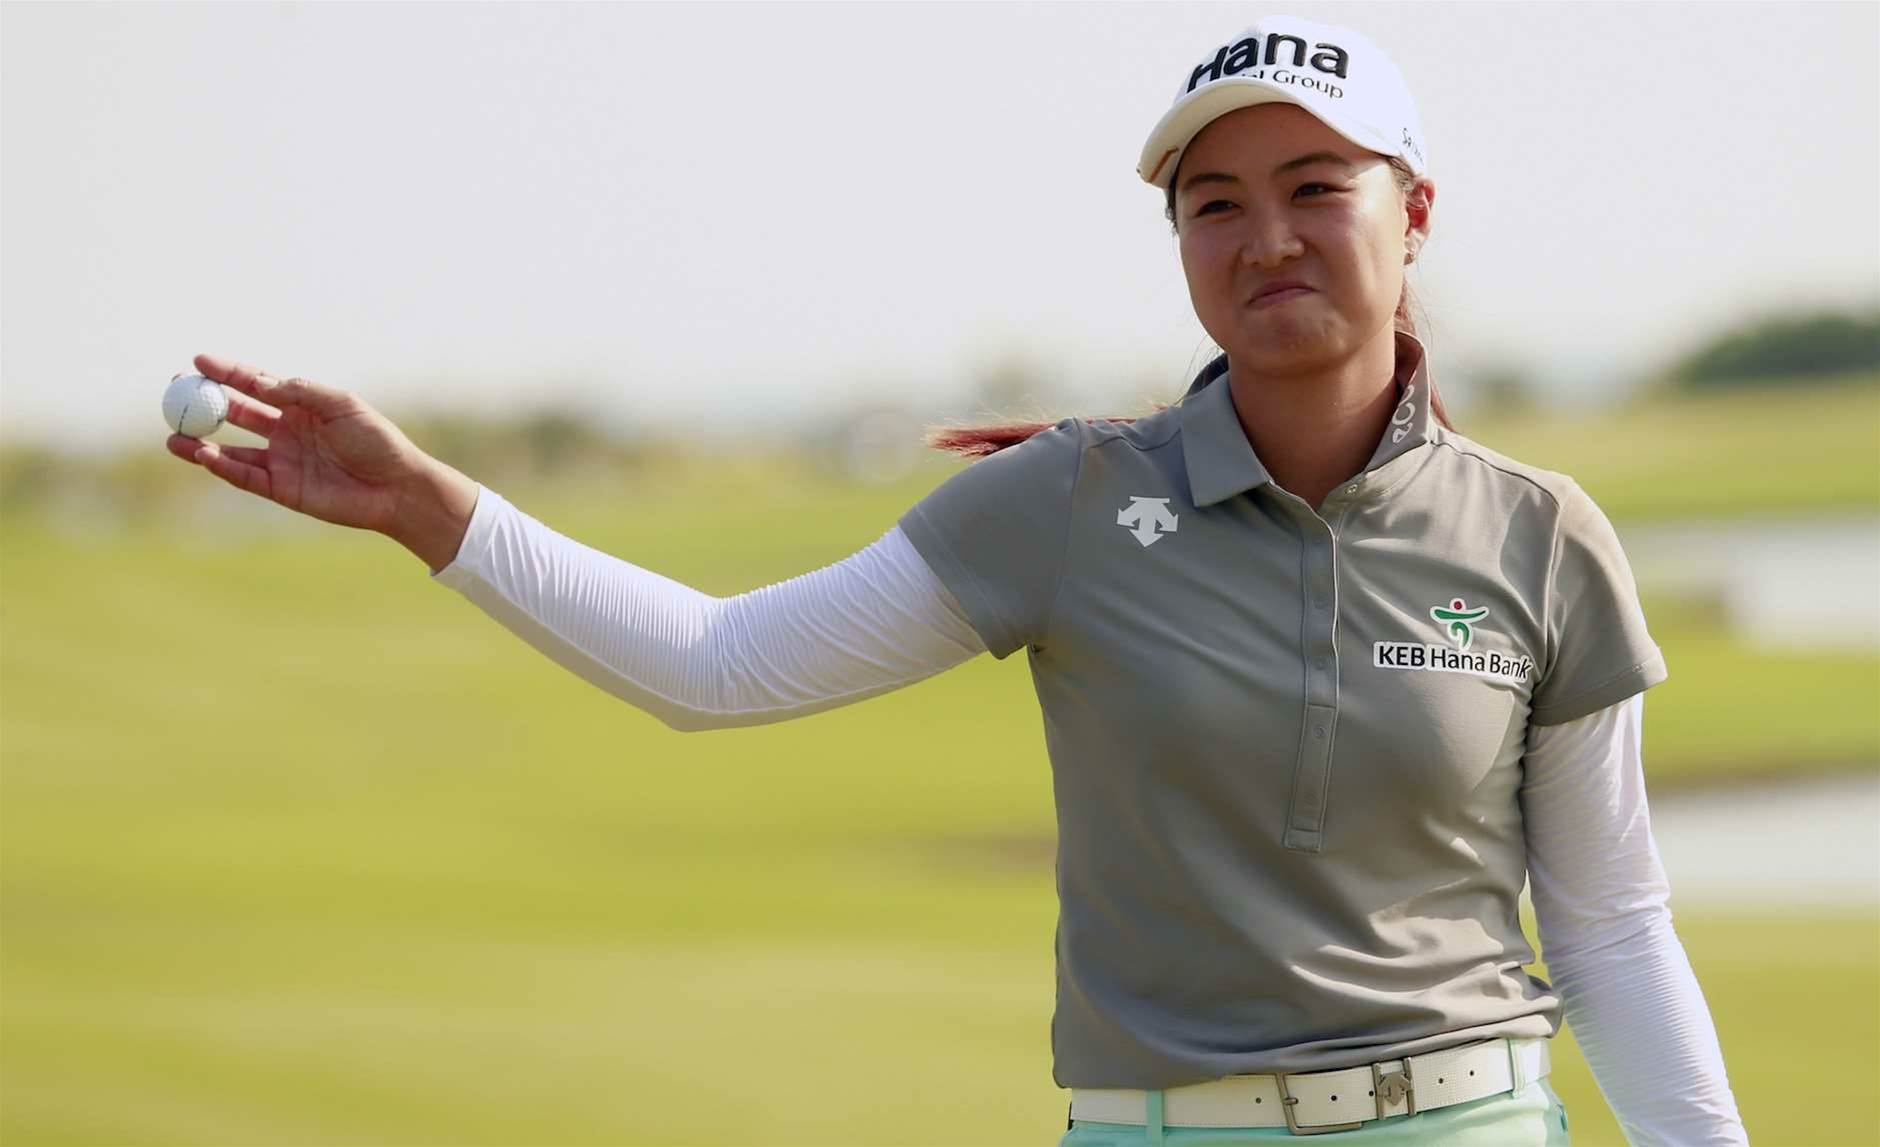 LPGA: Lee's China victory signals push for top-10